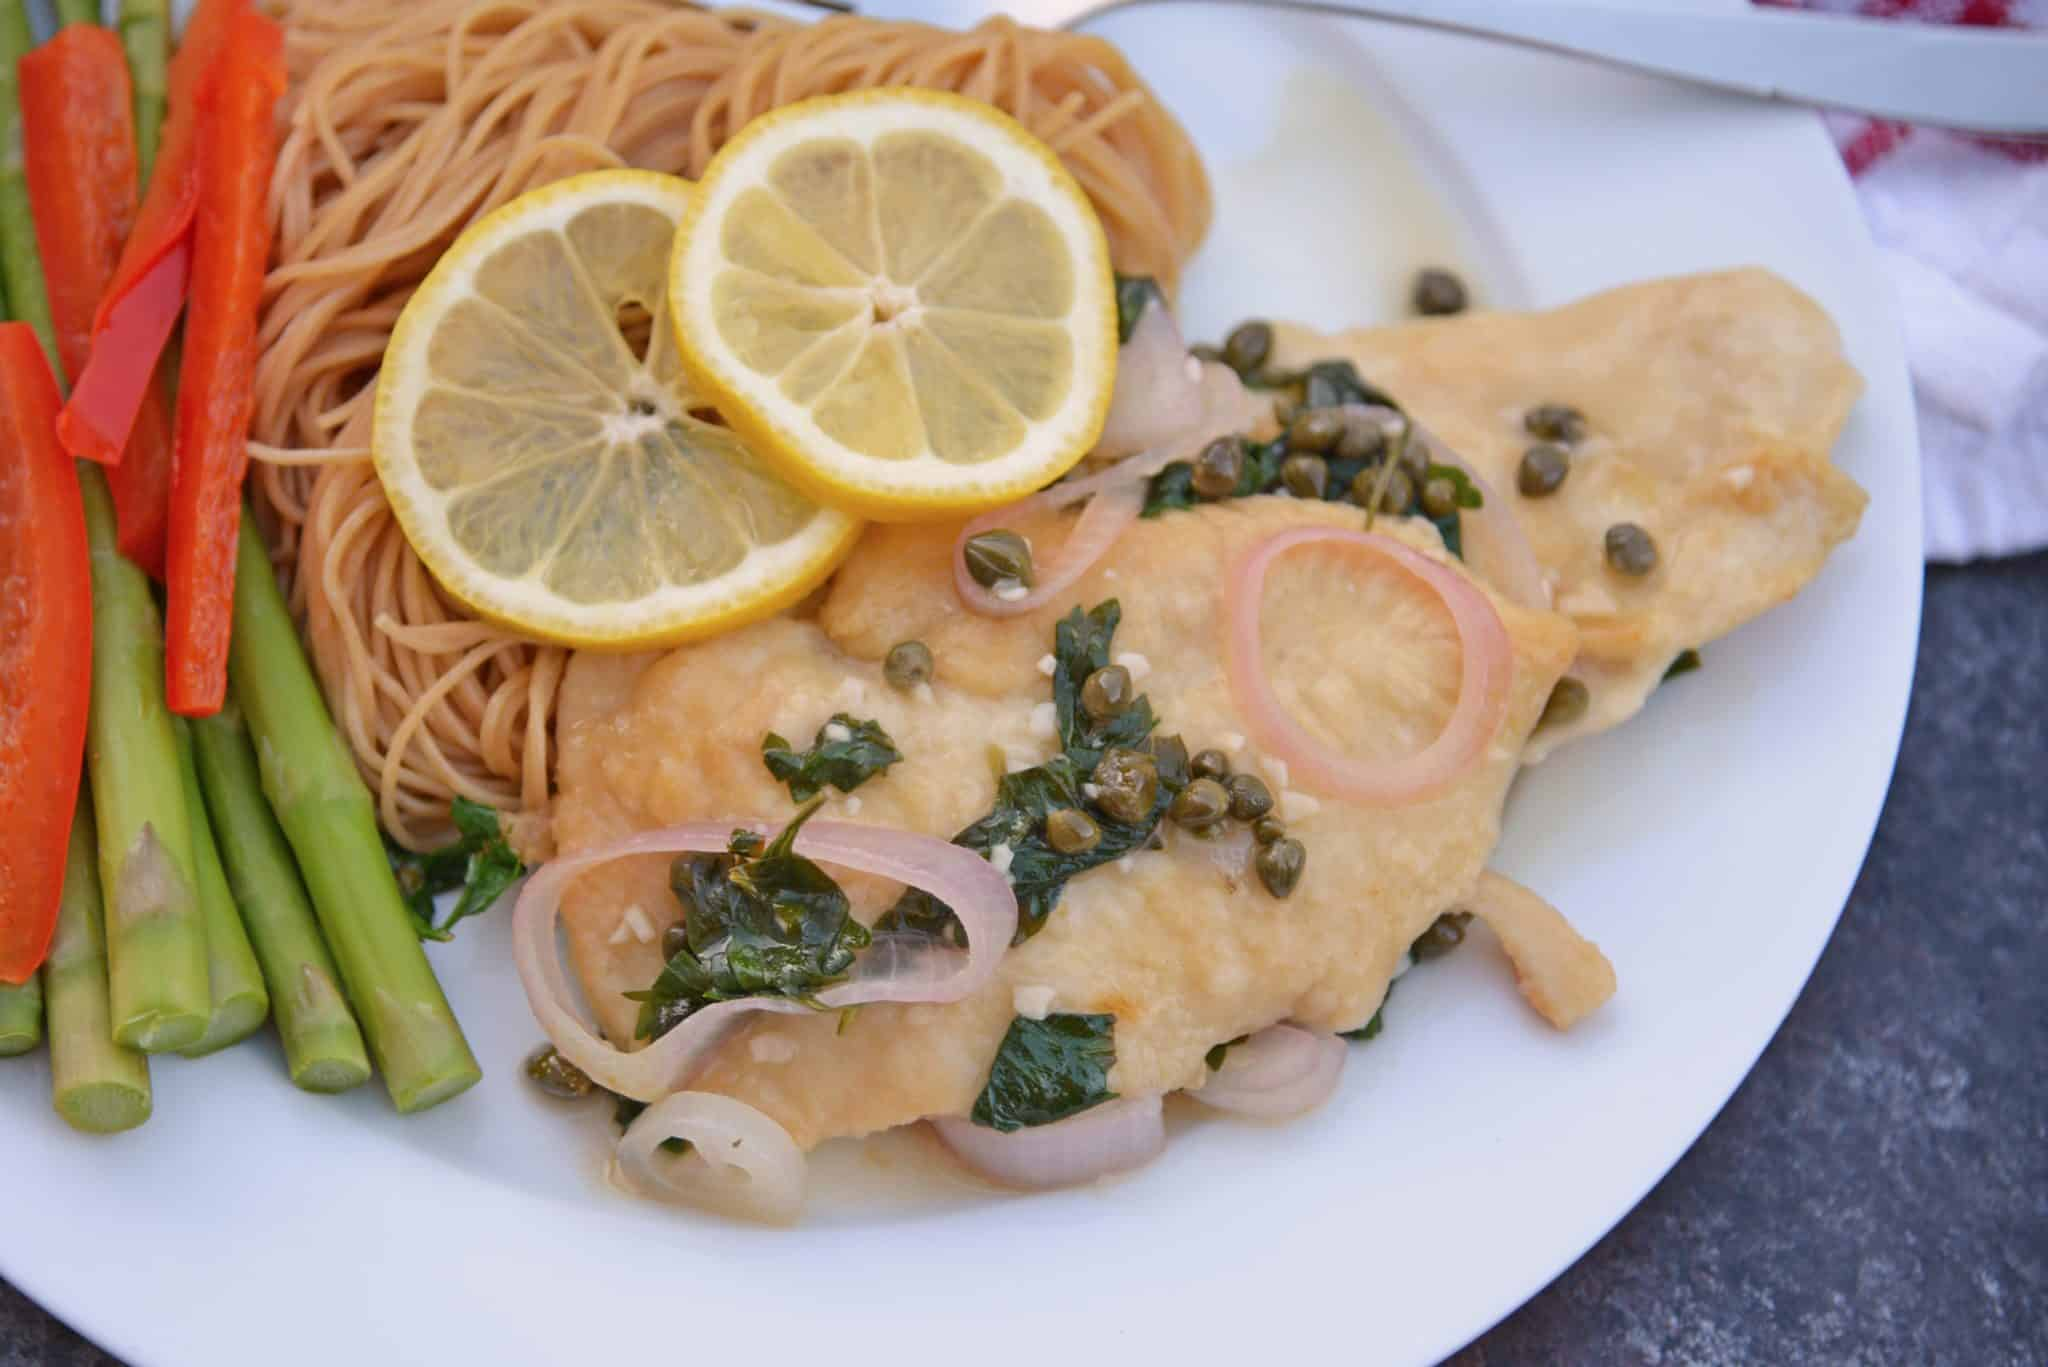 Classic Chicken Piccata is an easy Italian recipe that comes together in less than 3o minutes and explodes with flavors of lemon, caper and shallot. Delicious!  #chickenpiccata #easyitalianrecipes www.savoryexperiments.com